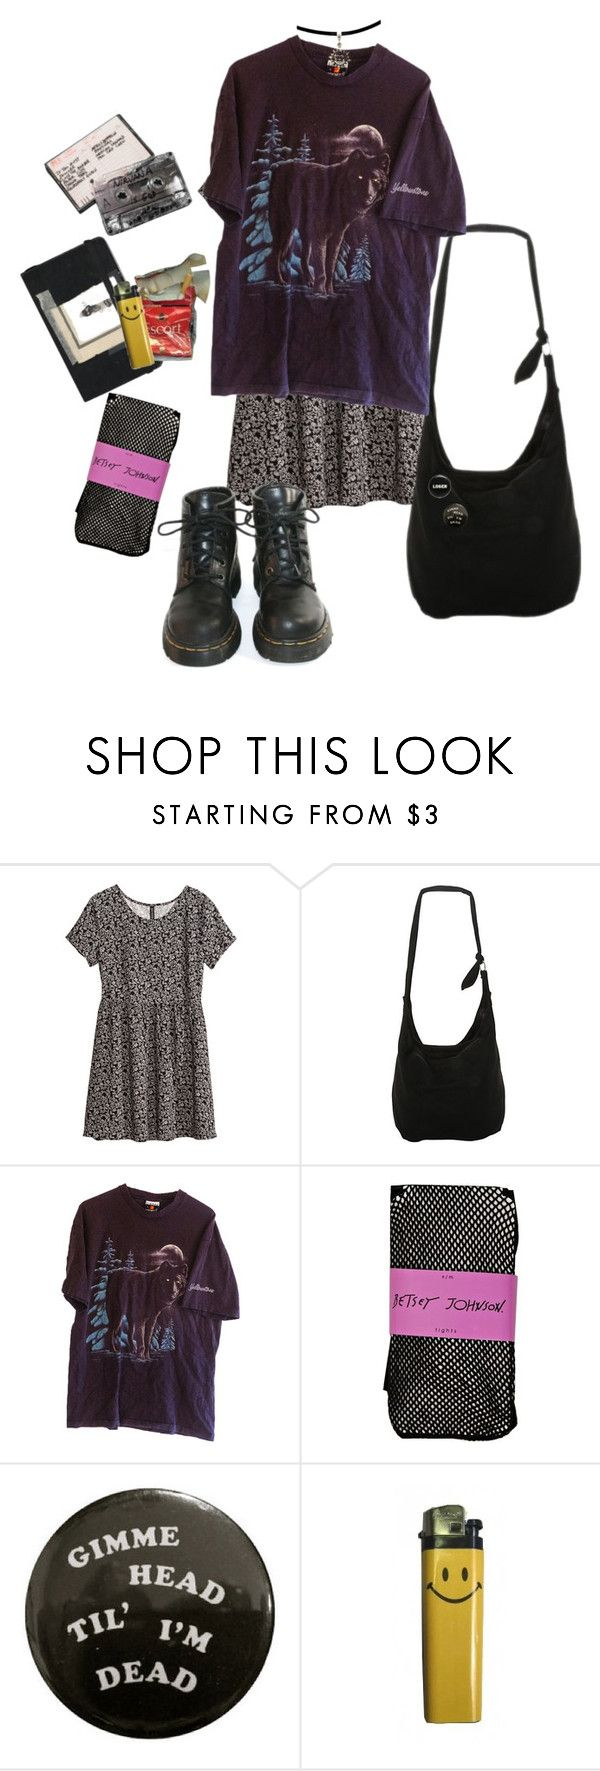 """""""Ik im weird but can we be friends?"""" by jennyryanfecitt ❤ liked on Polyvore featuring Moleskine, H&M, Disney, Dr. Martens, Betsey Johnson, women's clothing, women, female, woman and misses"""